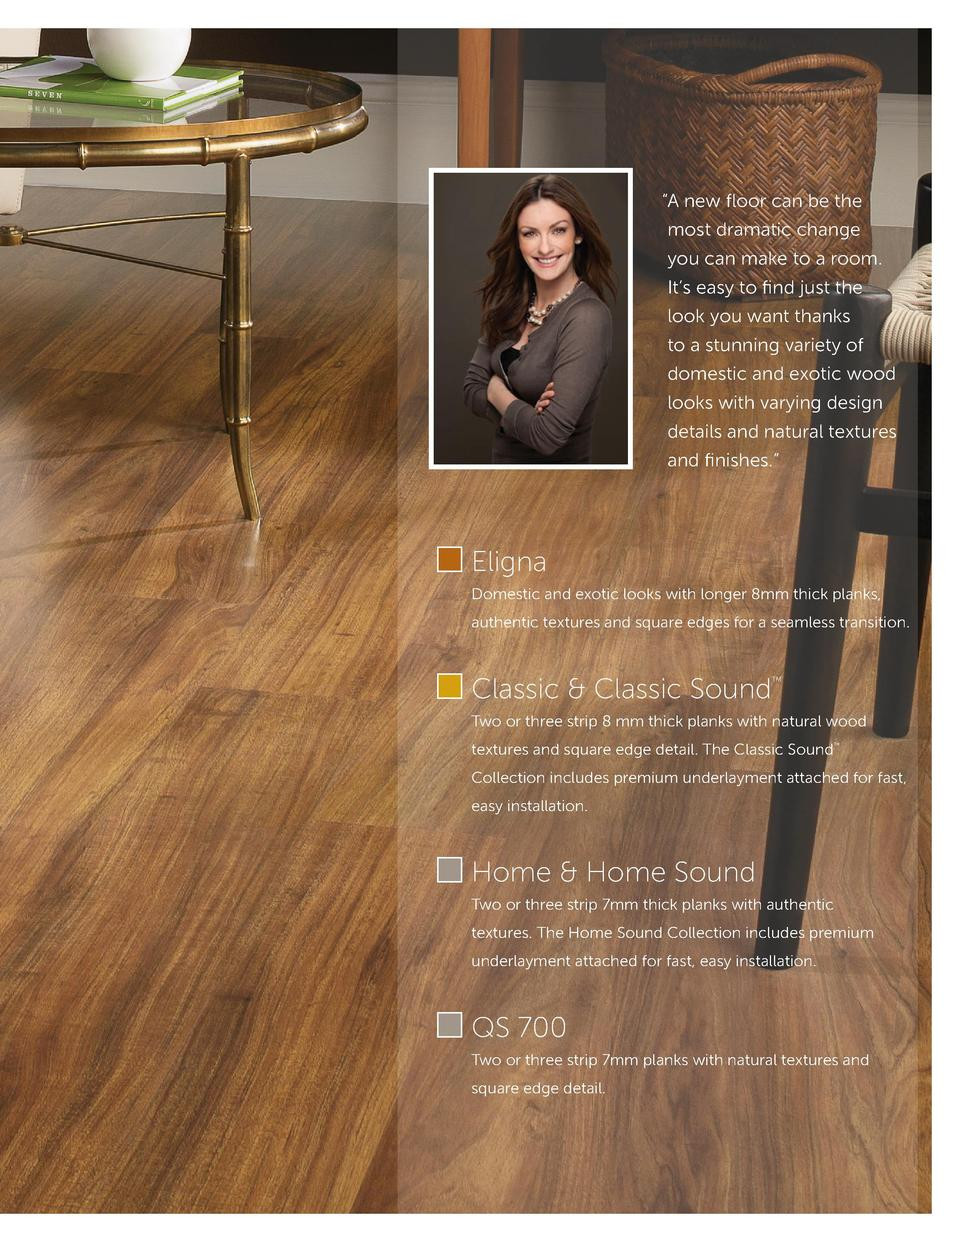 aquabar b hardwood flooring underlayment problems of quick step laminate catalog simplebooklet com inside a new floor can be the most dramatic change you can make to a room